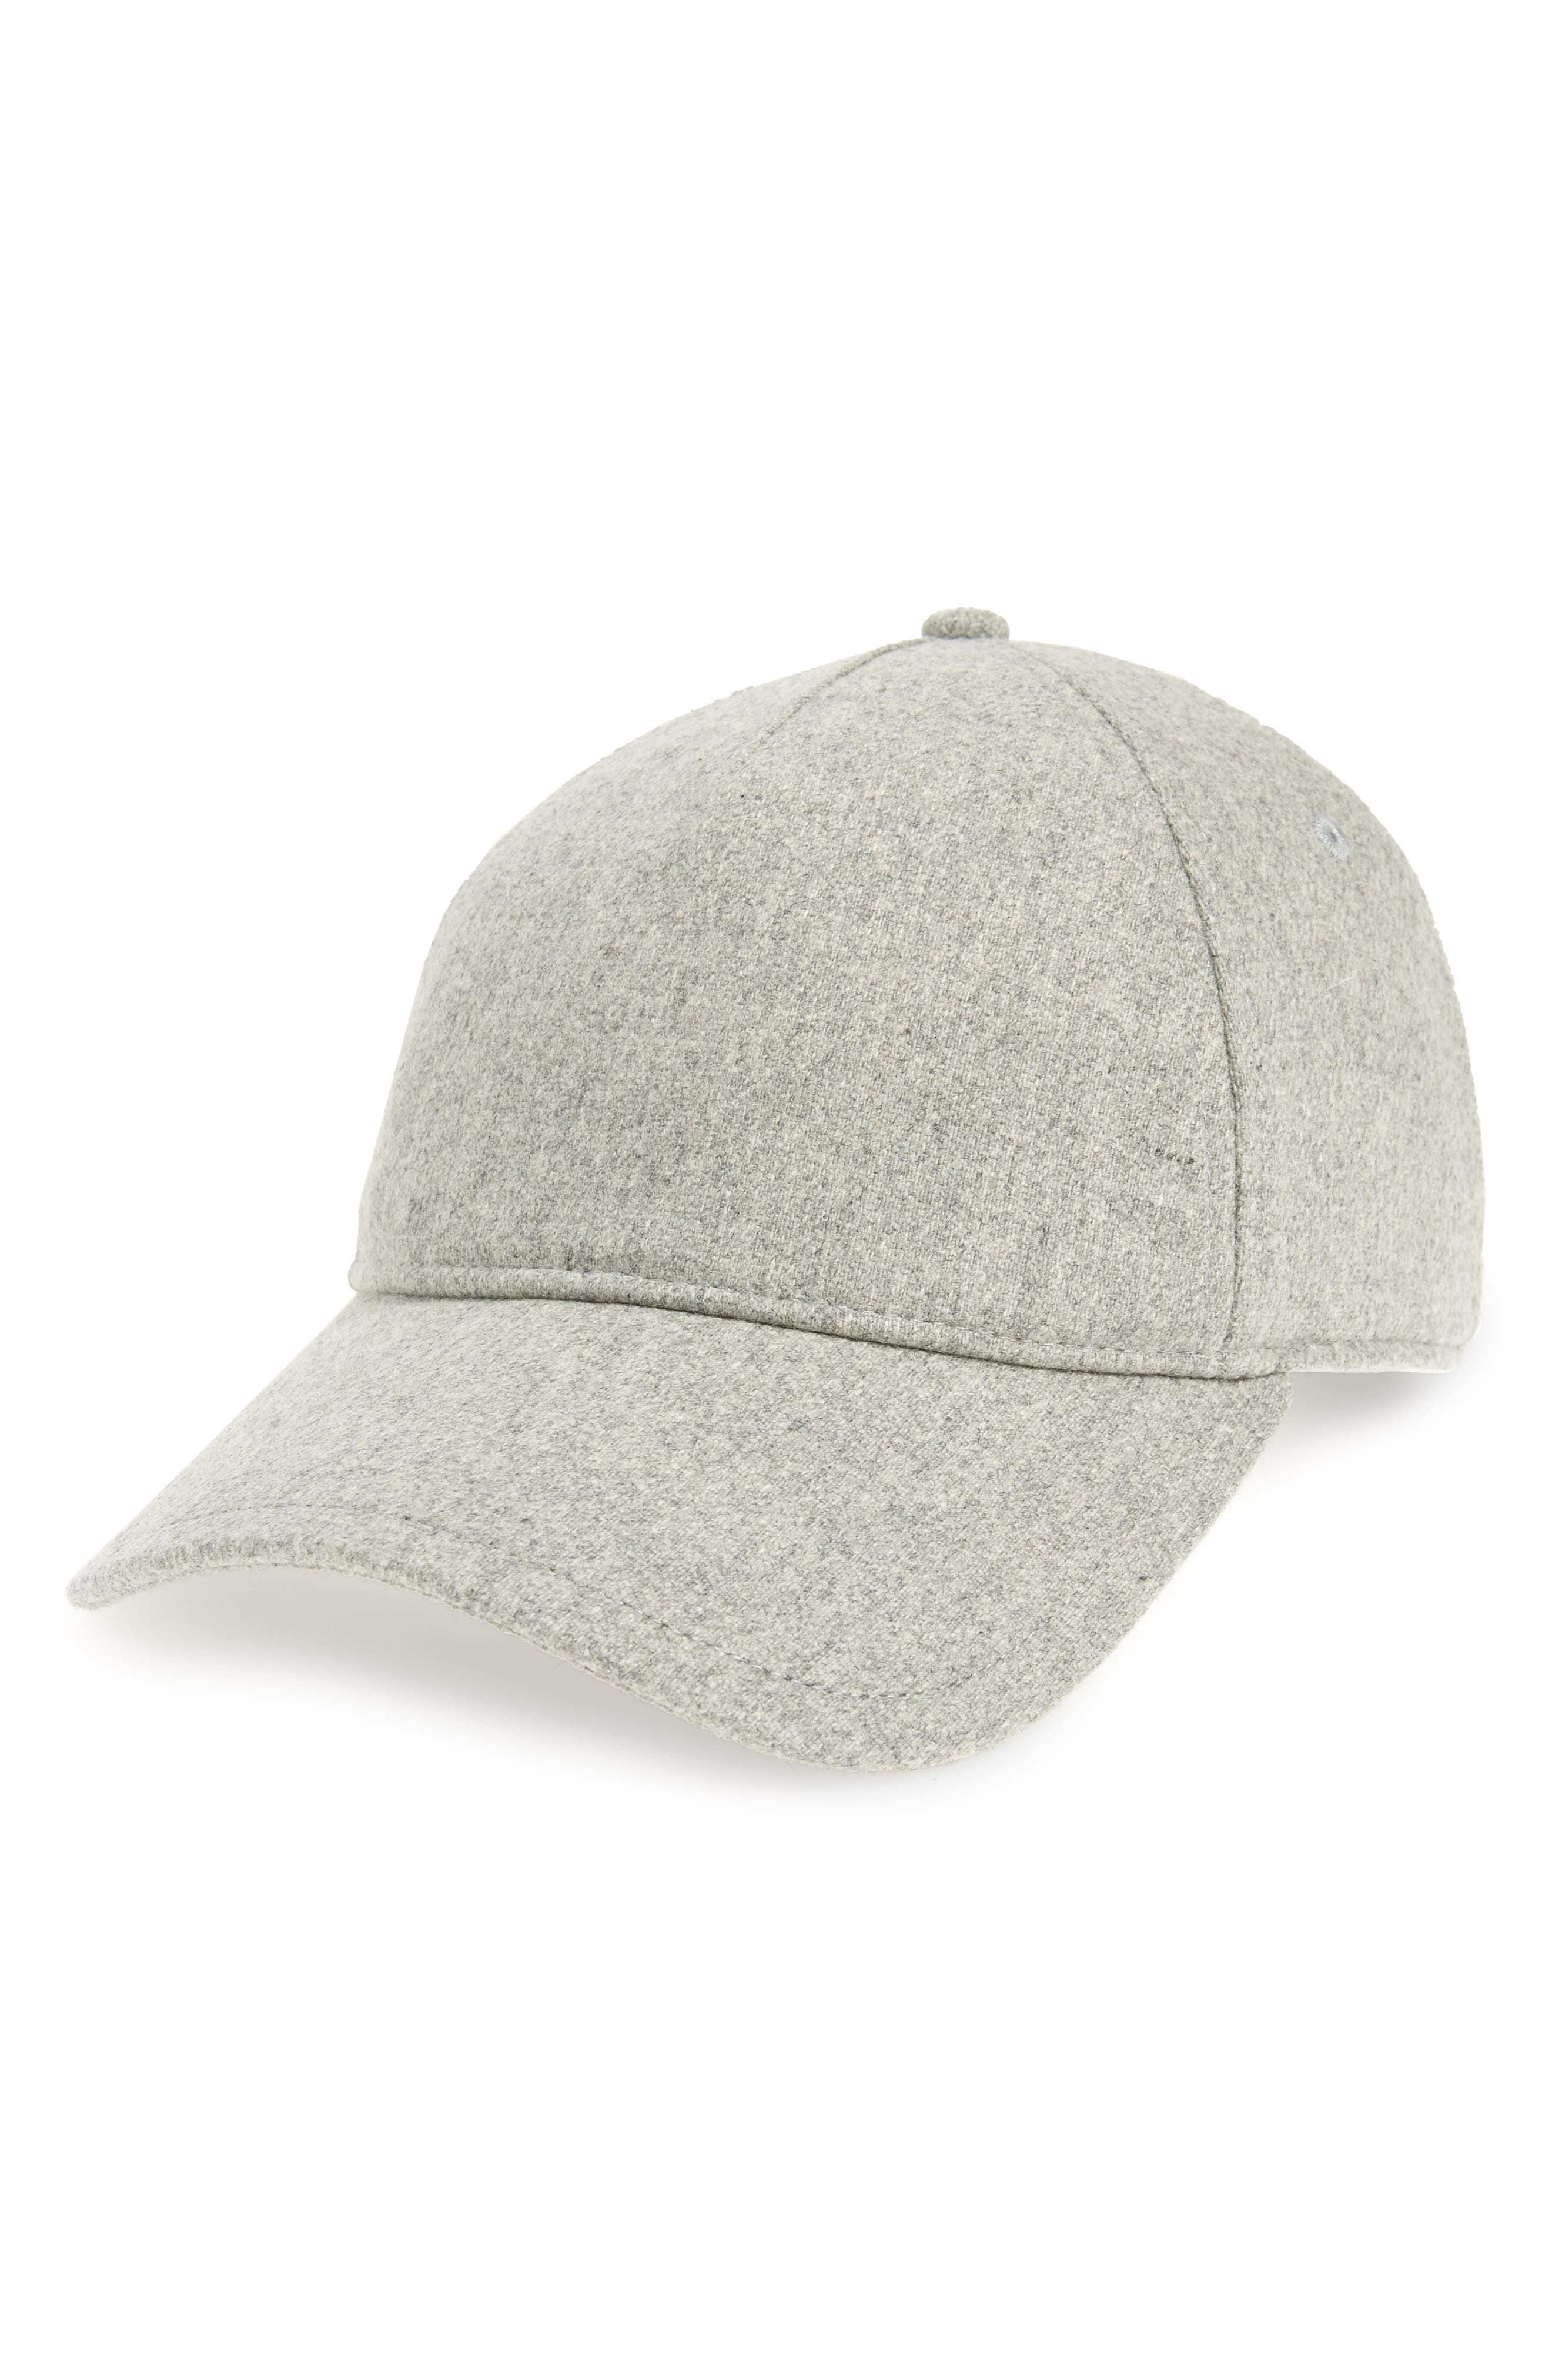 Marilyn Baseball Cap,                         Main,                         color, LIGHT HEATHER GREY